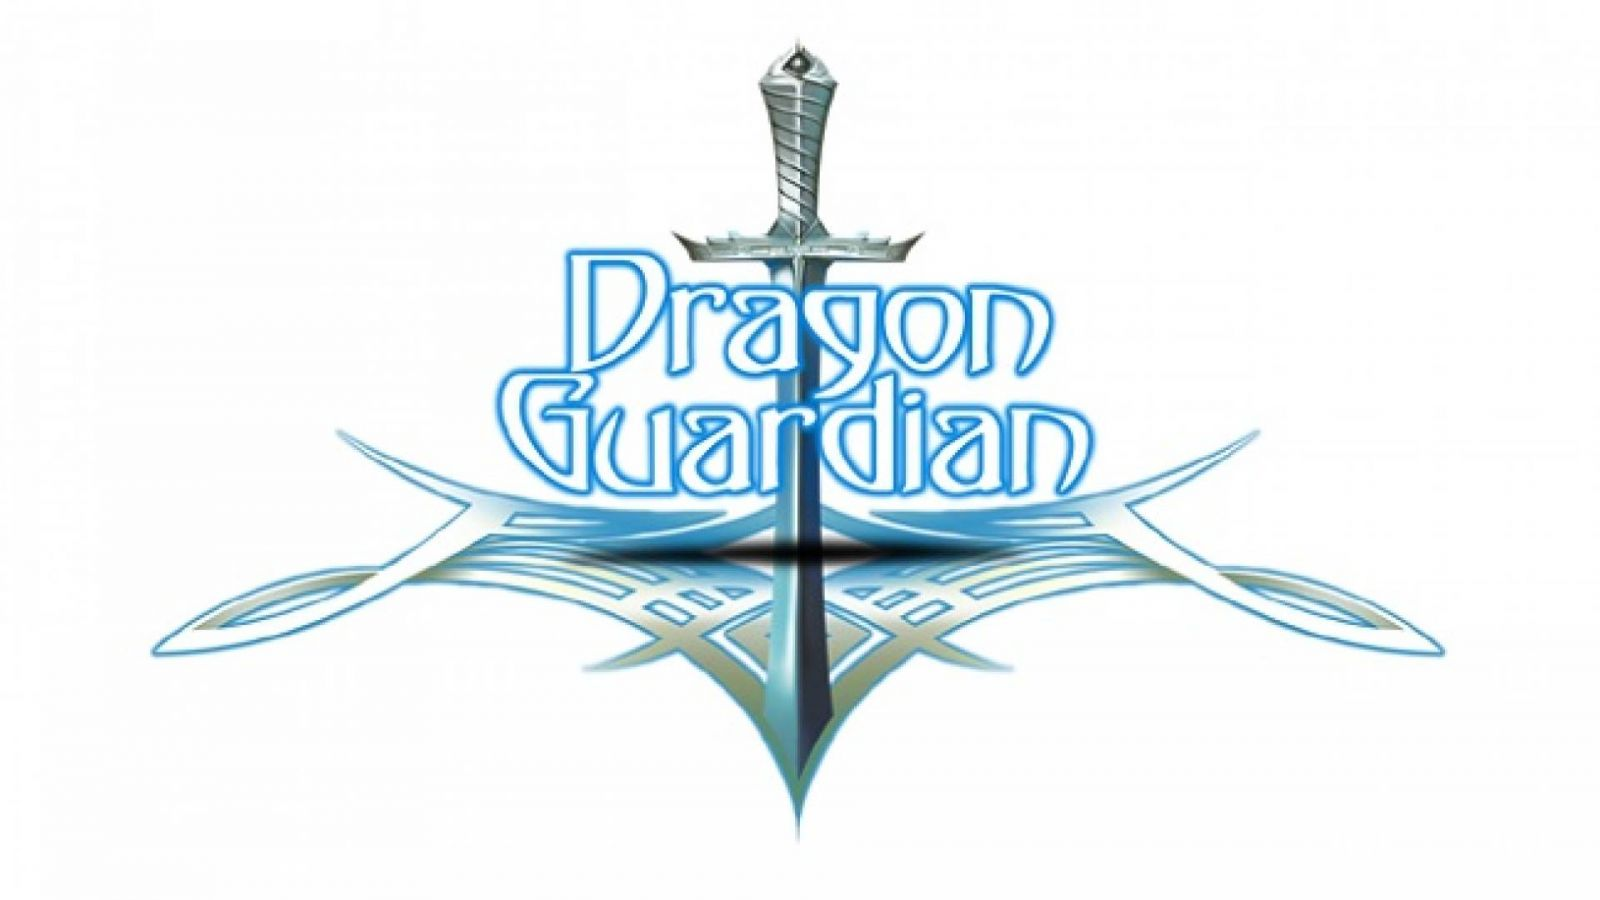 Dragon Guardianilta uusi minialbumi © Dragon Guardian